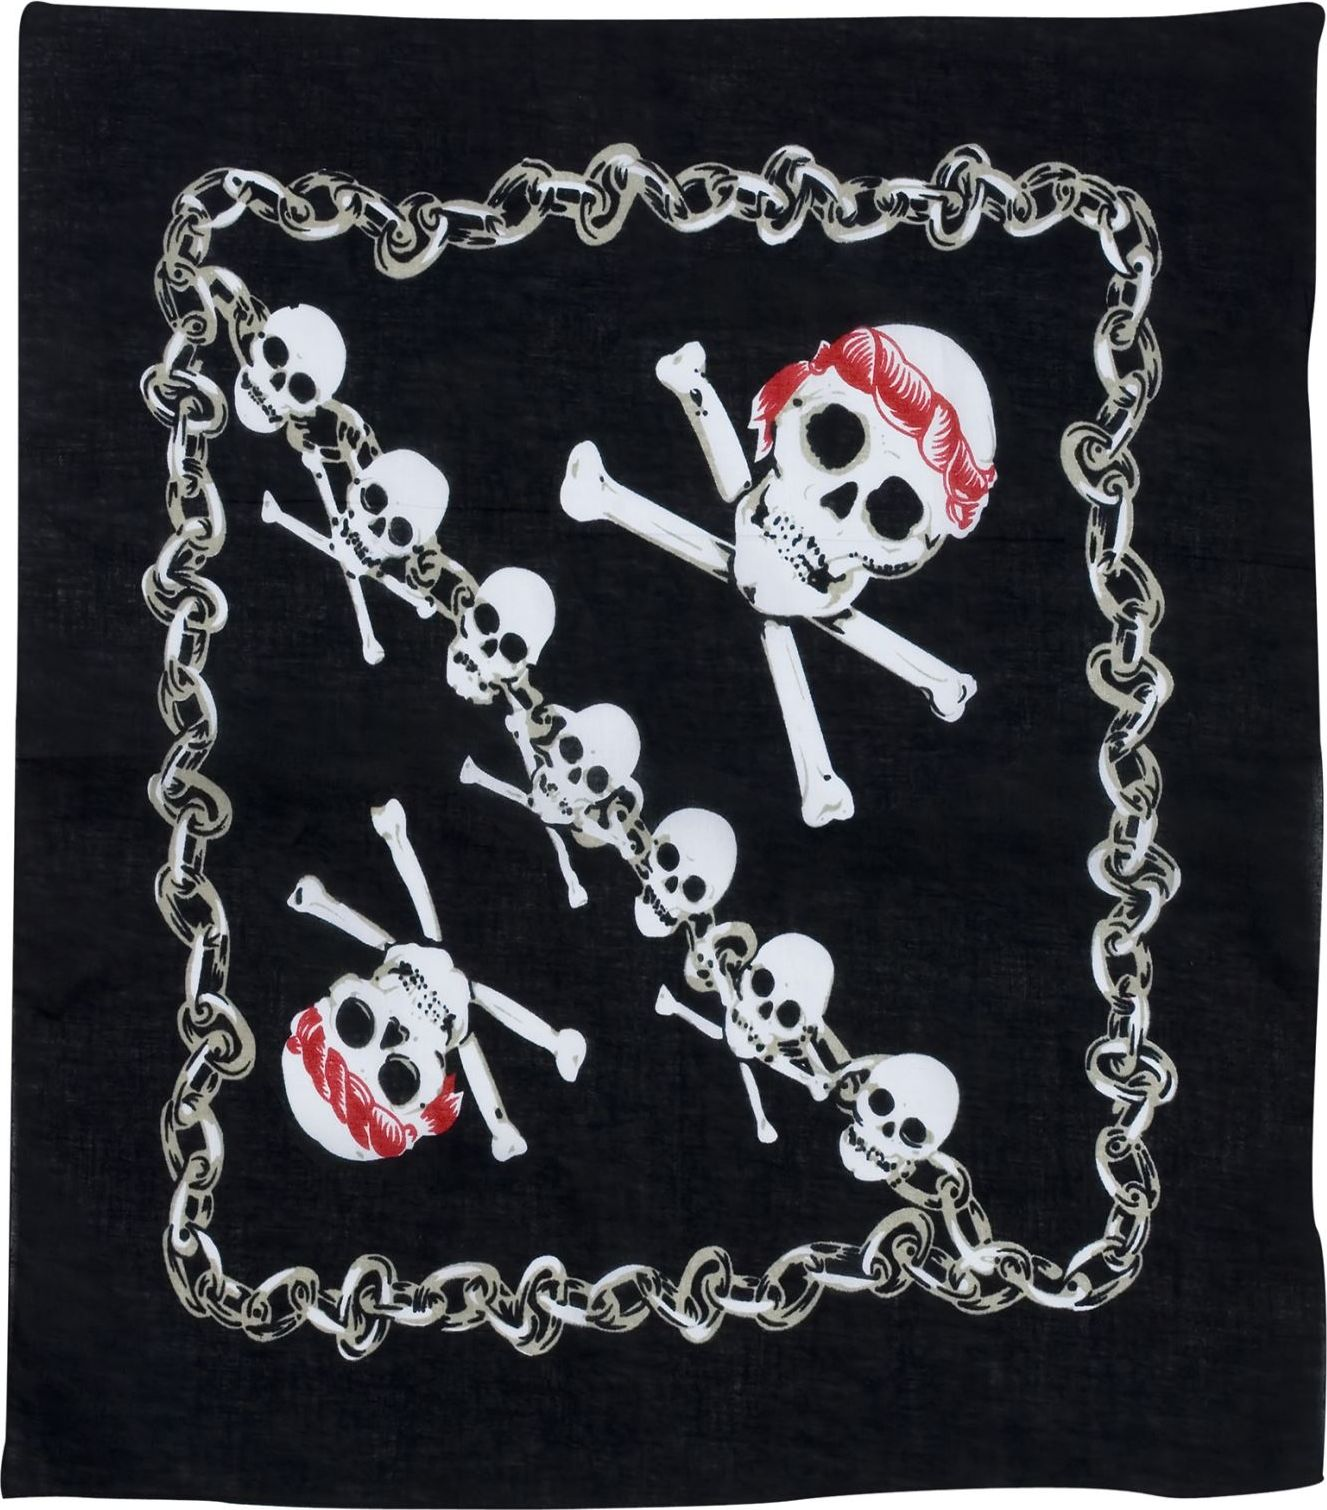 Zwarte piraten bandana